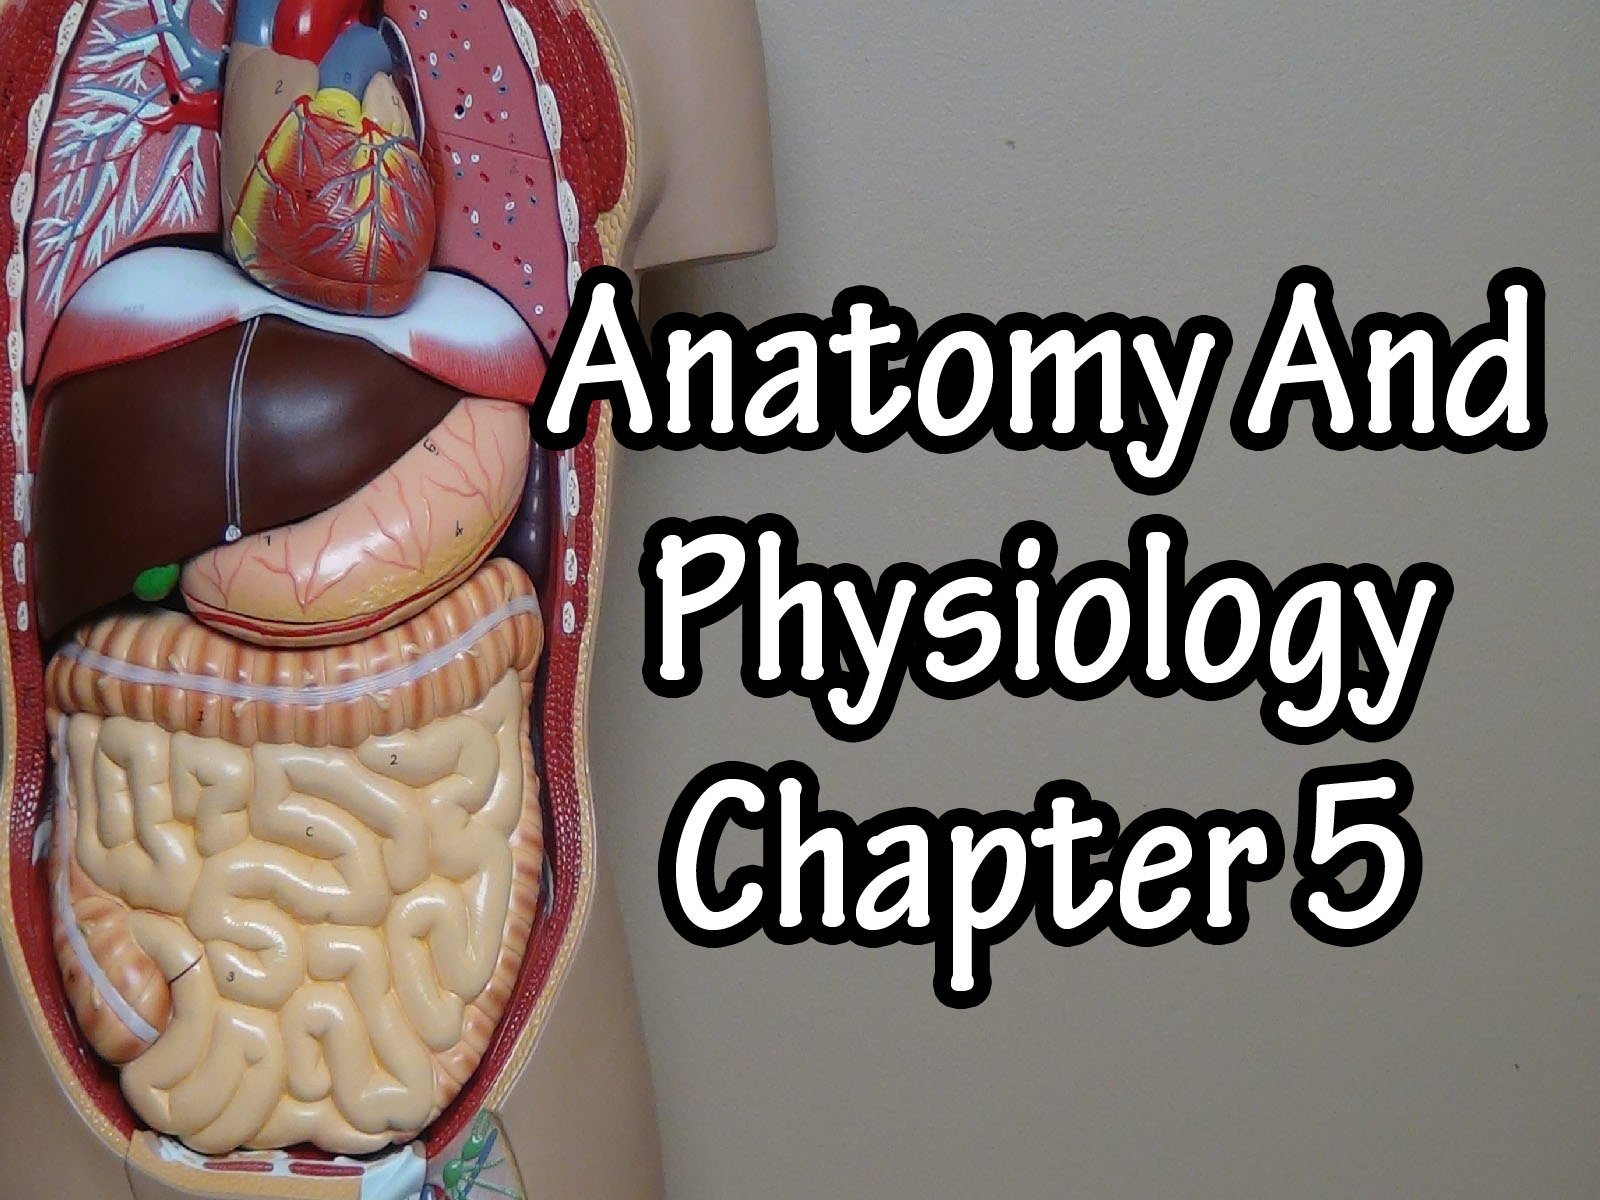 Anatomy And Physiology Chapter 5 on Amazon Prime Video UK